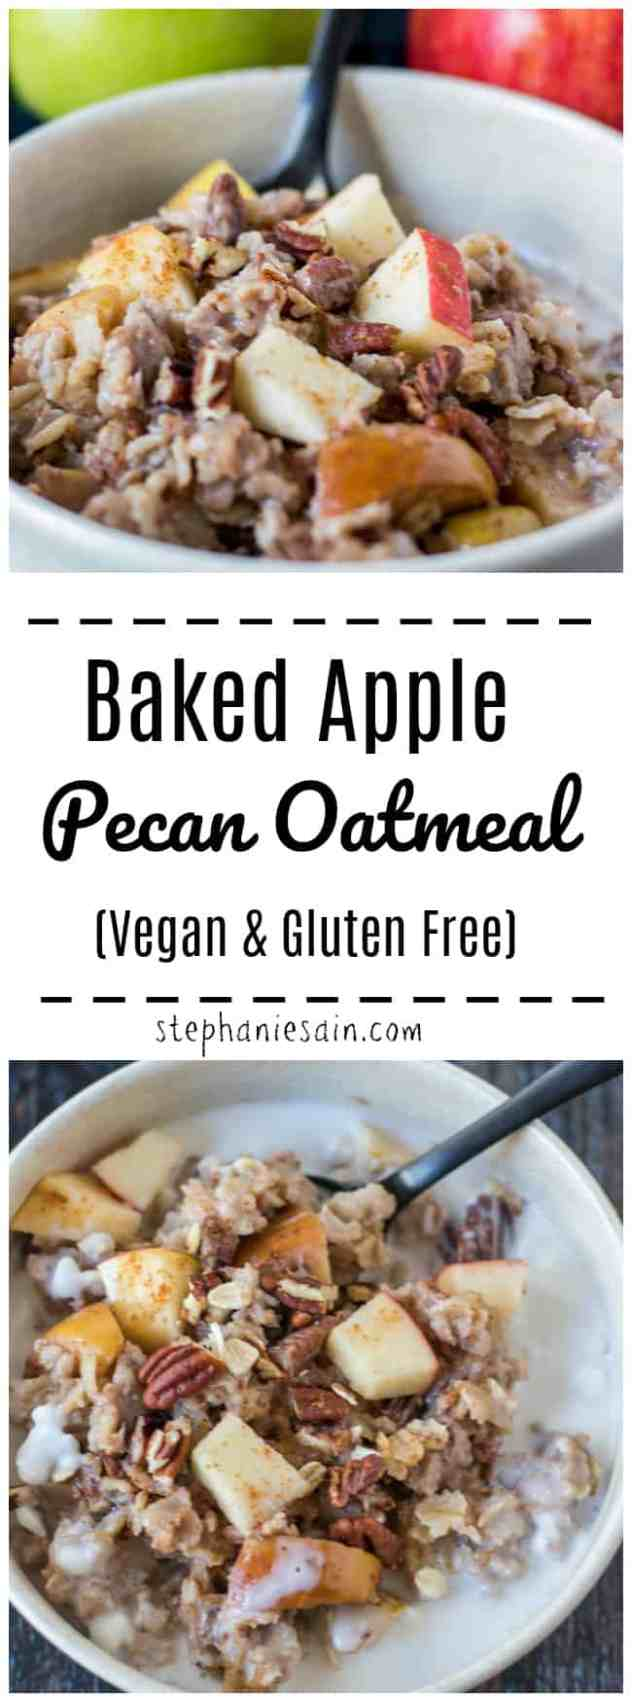 This Baked Apple Pecan Oatmeal is loaded with all the flavors of Fall. Apples, pecans, cinnamon & nutmeg baked in your oatmeal for a delicious breakfast the whole family will love. Also good for serving guests. Vegan & Gluten Free.